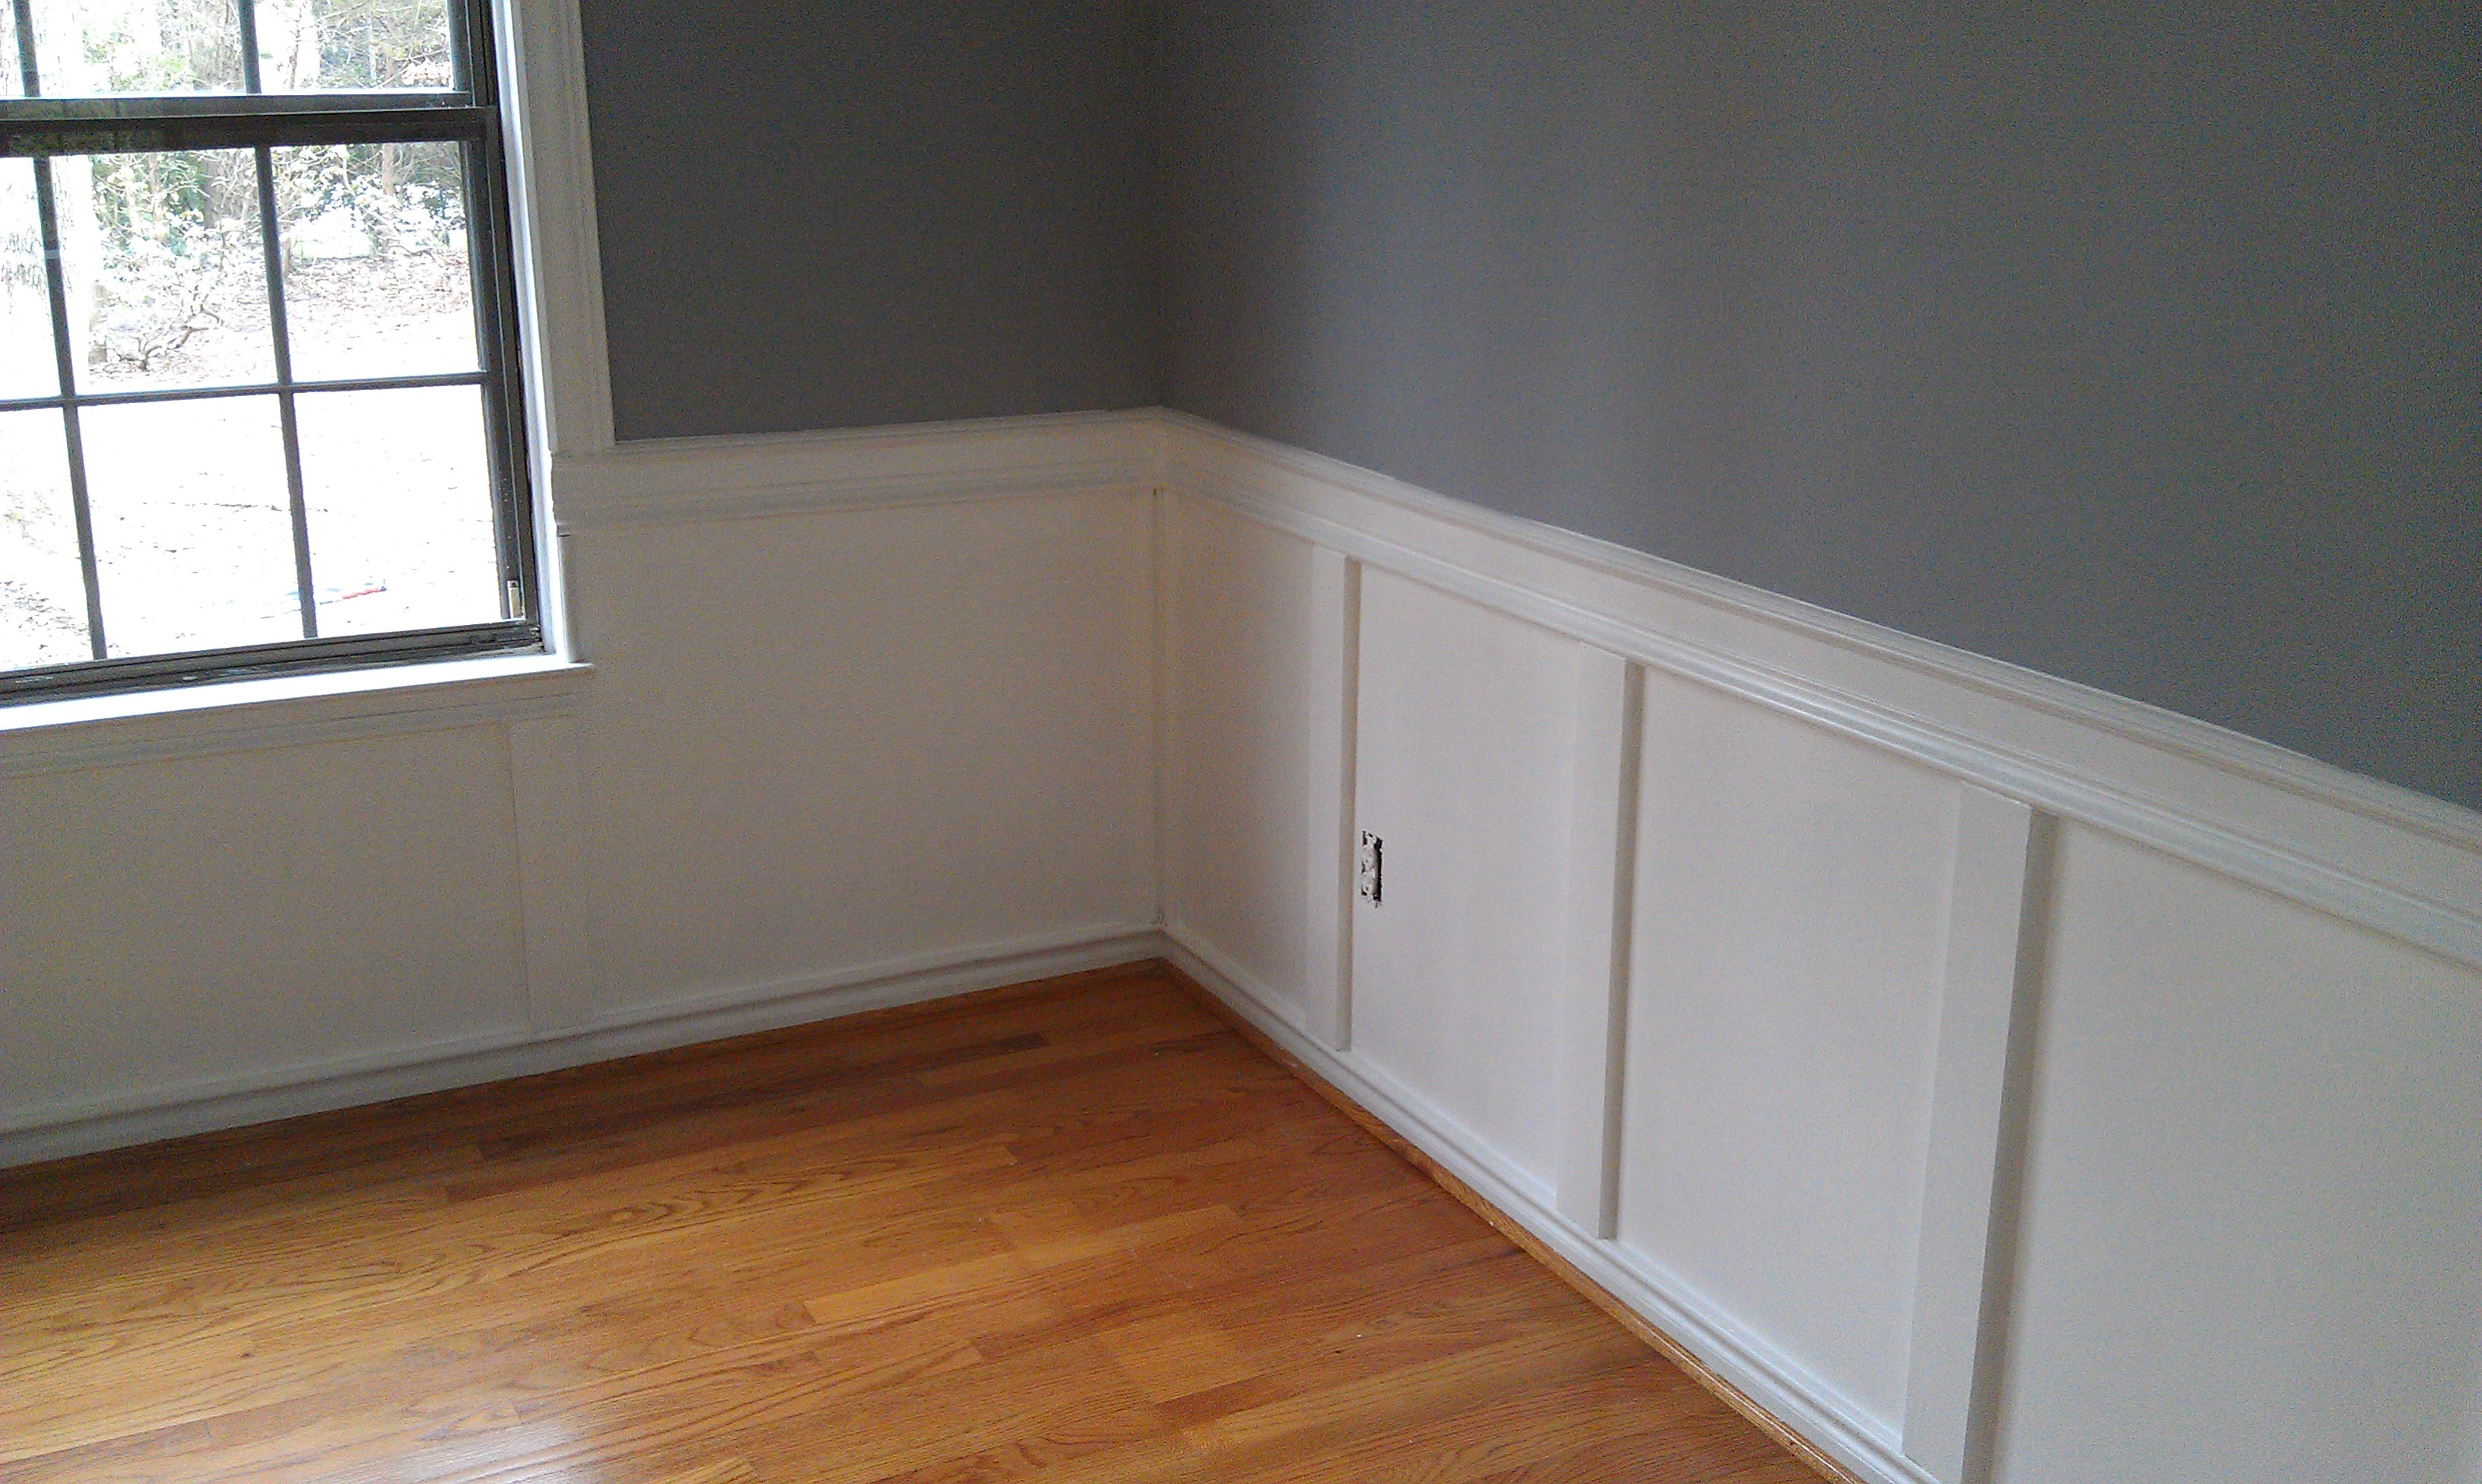 Wainscoting sophia rae home furnishings Should i paint wood paneling